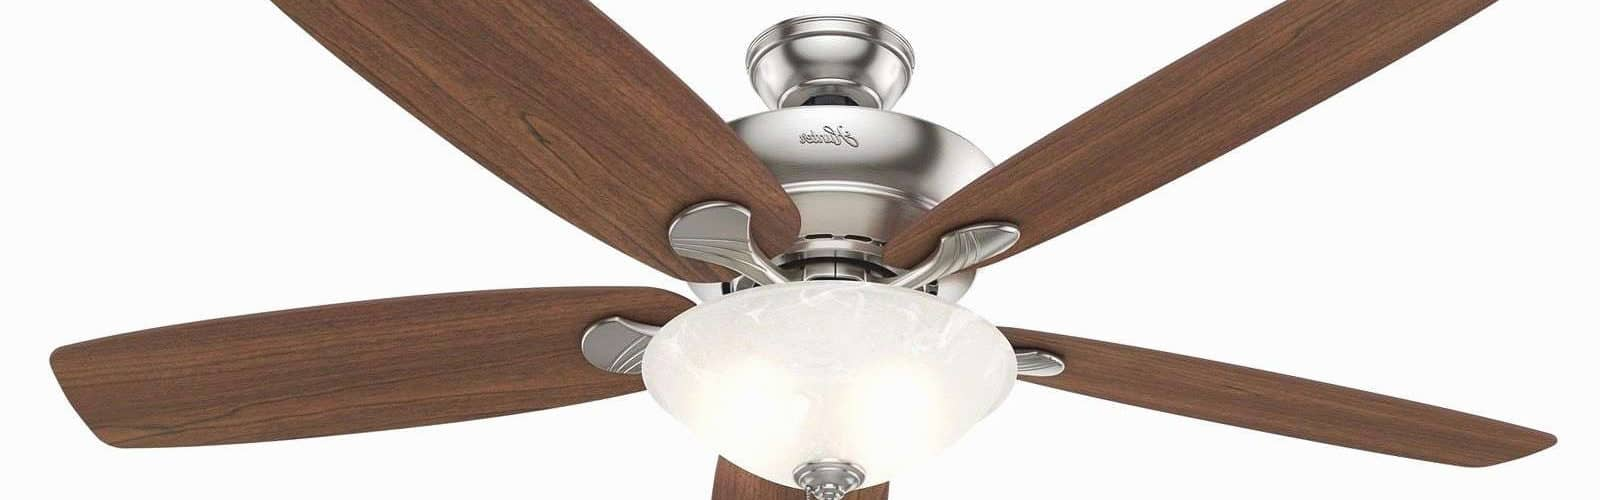 How Much Does It Cost To Install A Ceiling Fan The Housing Forum